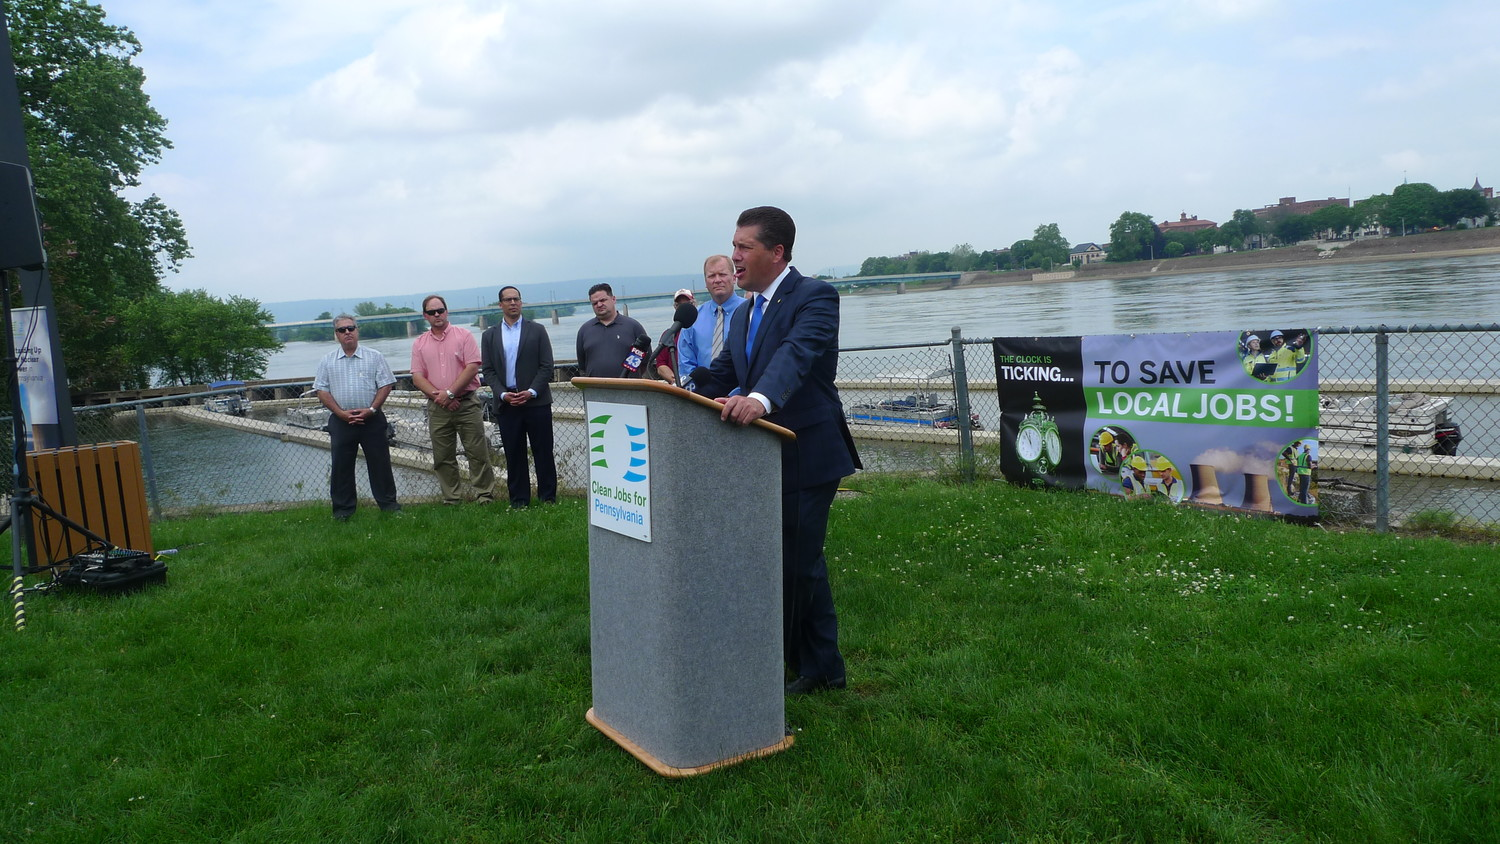 State Rep. Tom Mehaffie, R-Lower Swatara, speaks at the rally on City Island held by the Clean Jobs for Pennsylvania coalition May 30.